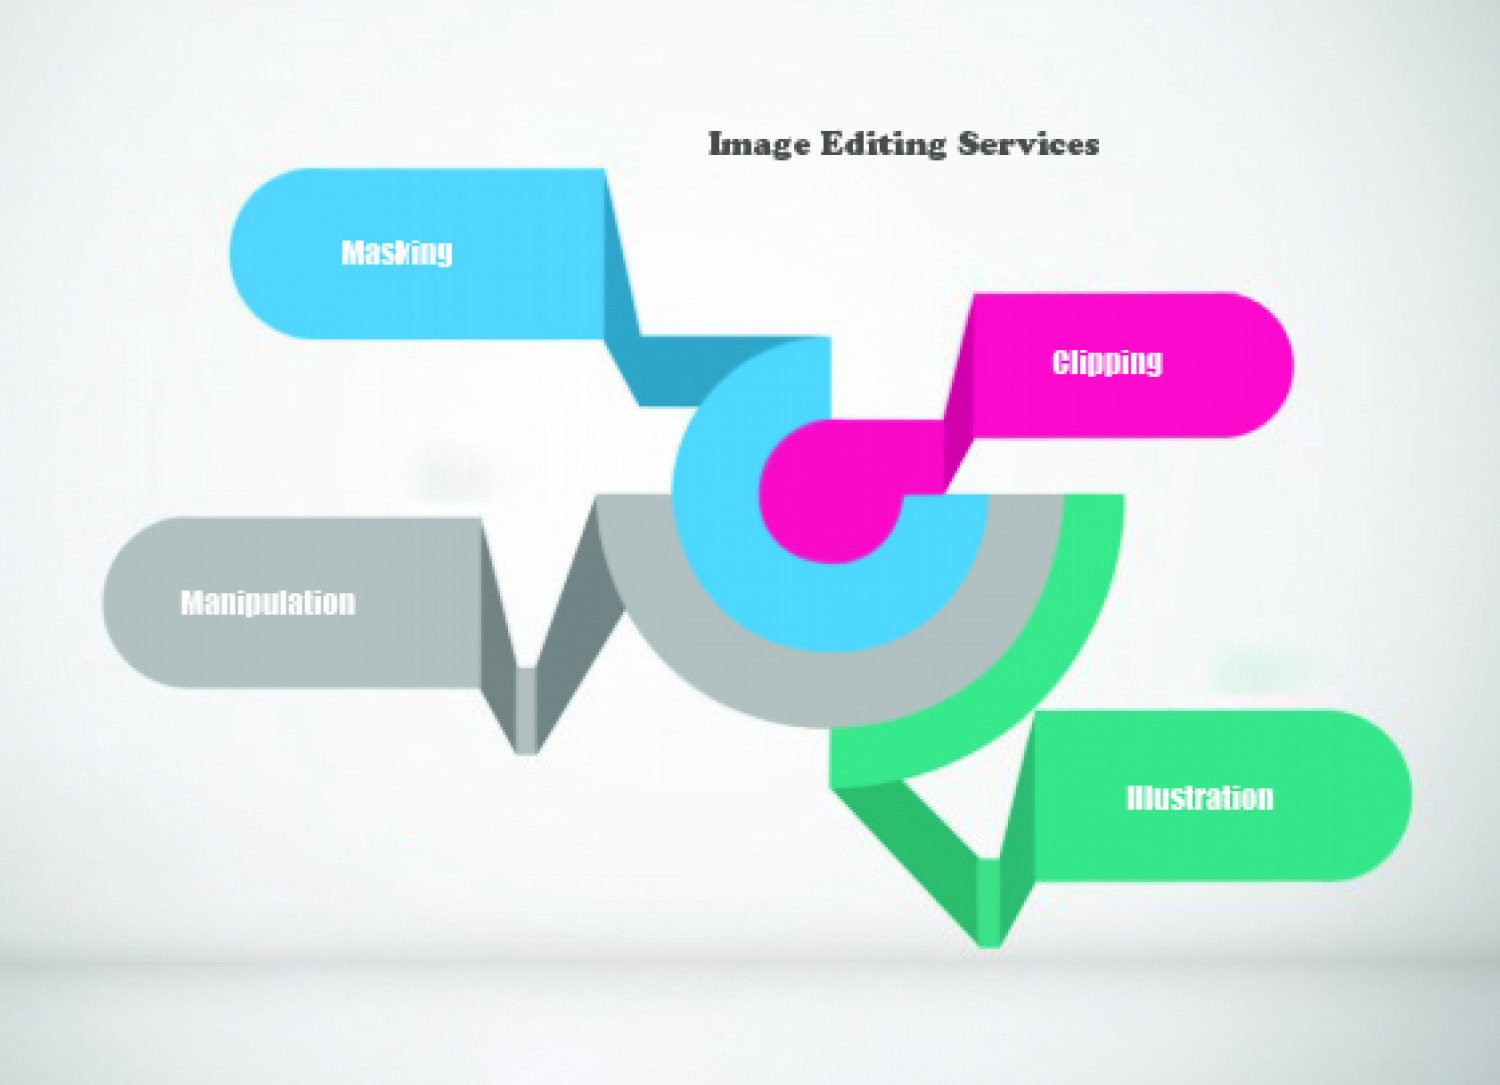 Image Solutions India - Image Editing Services Infographic